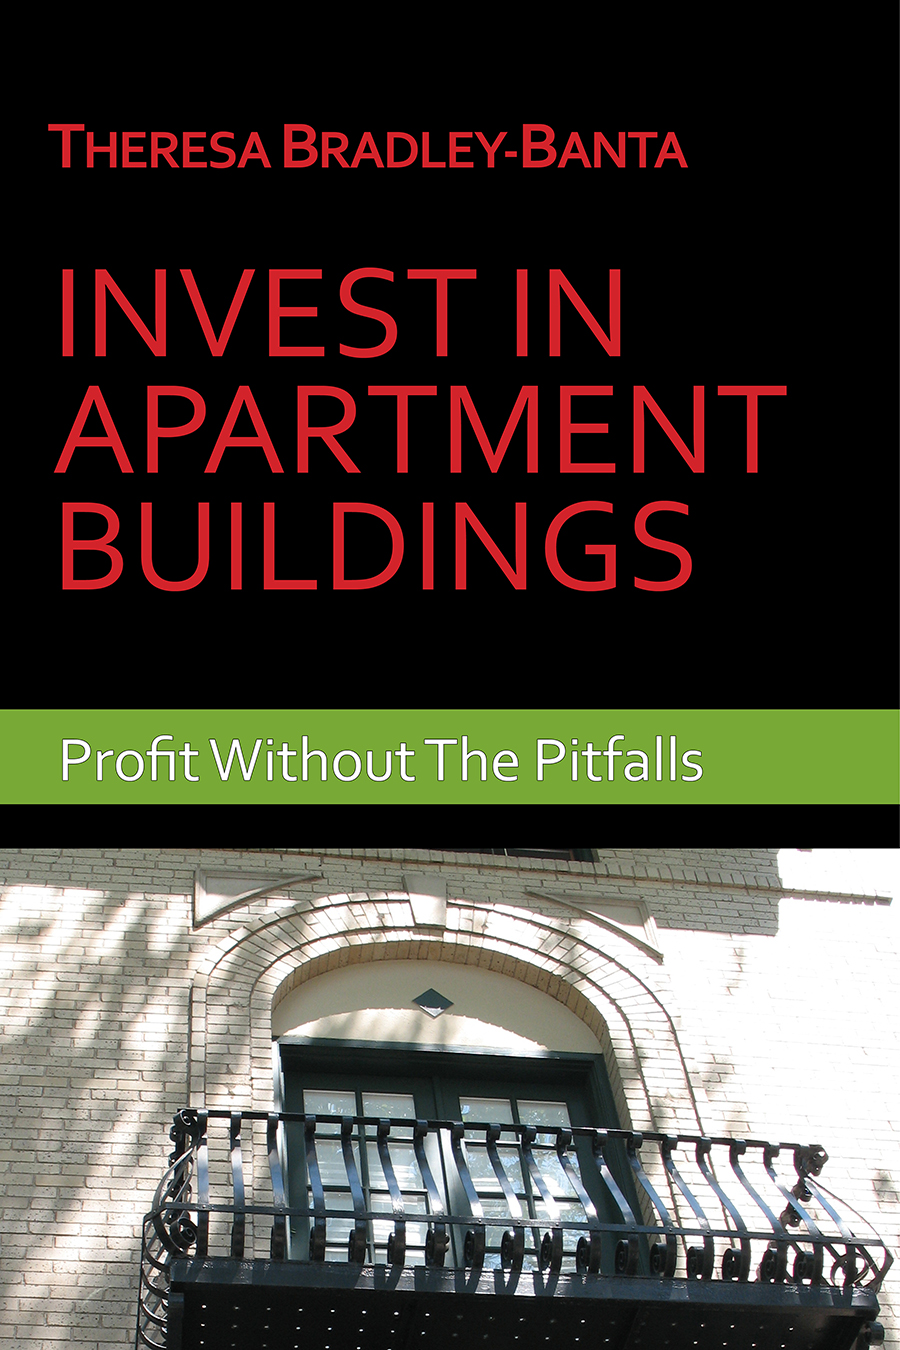 Are Apartment Buildings A Good Investment